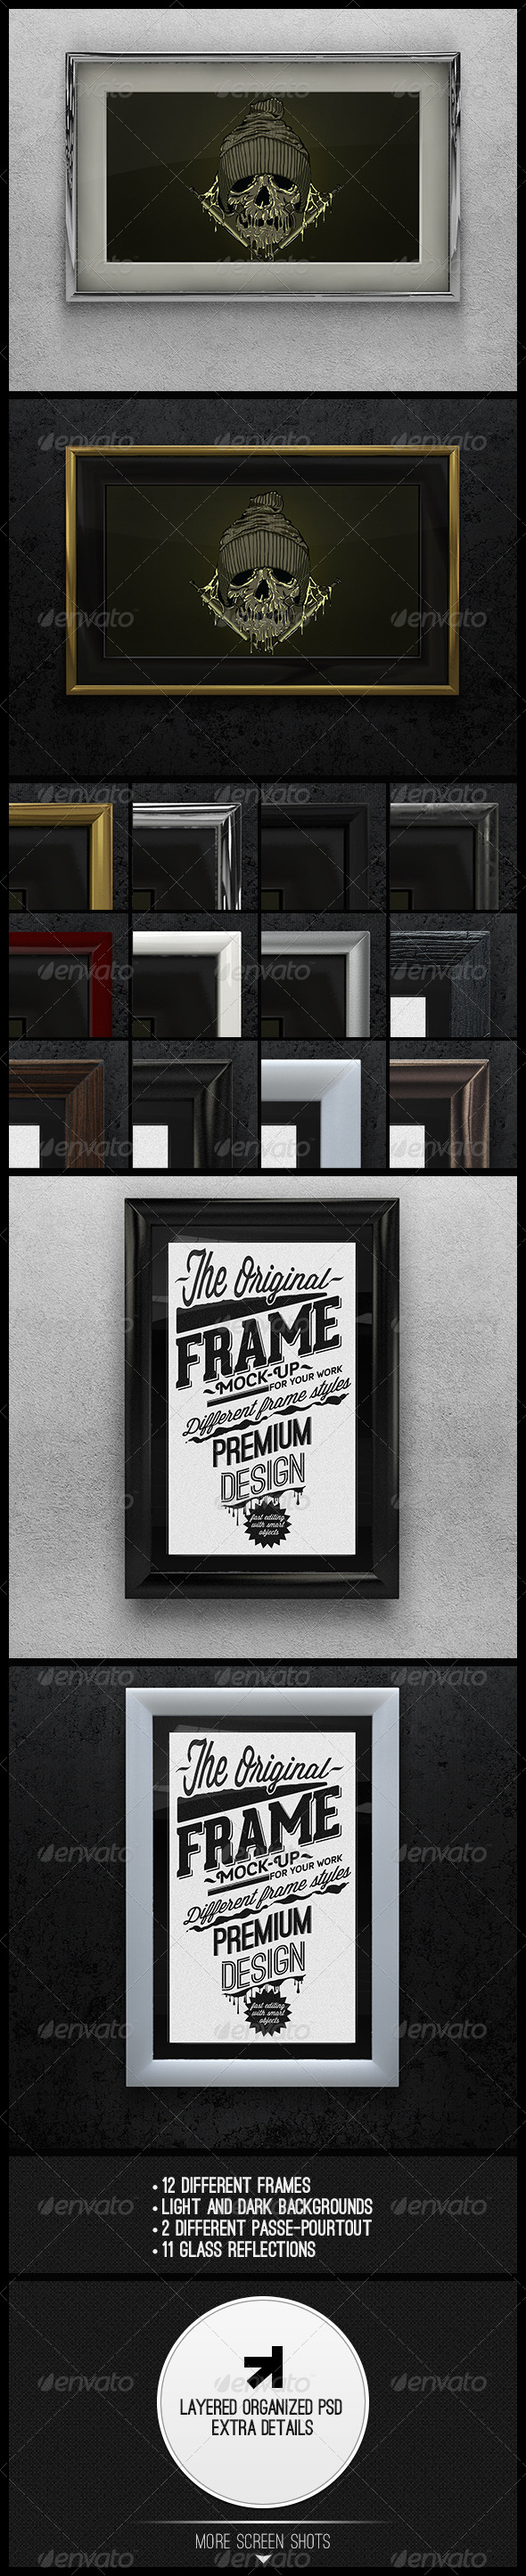 Artwork Frame Mock-up